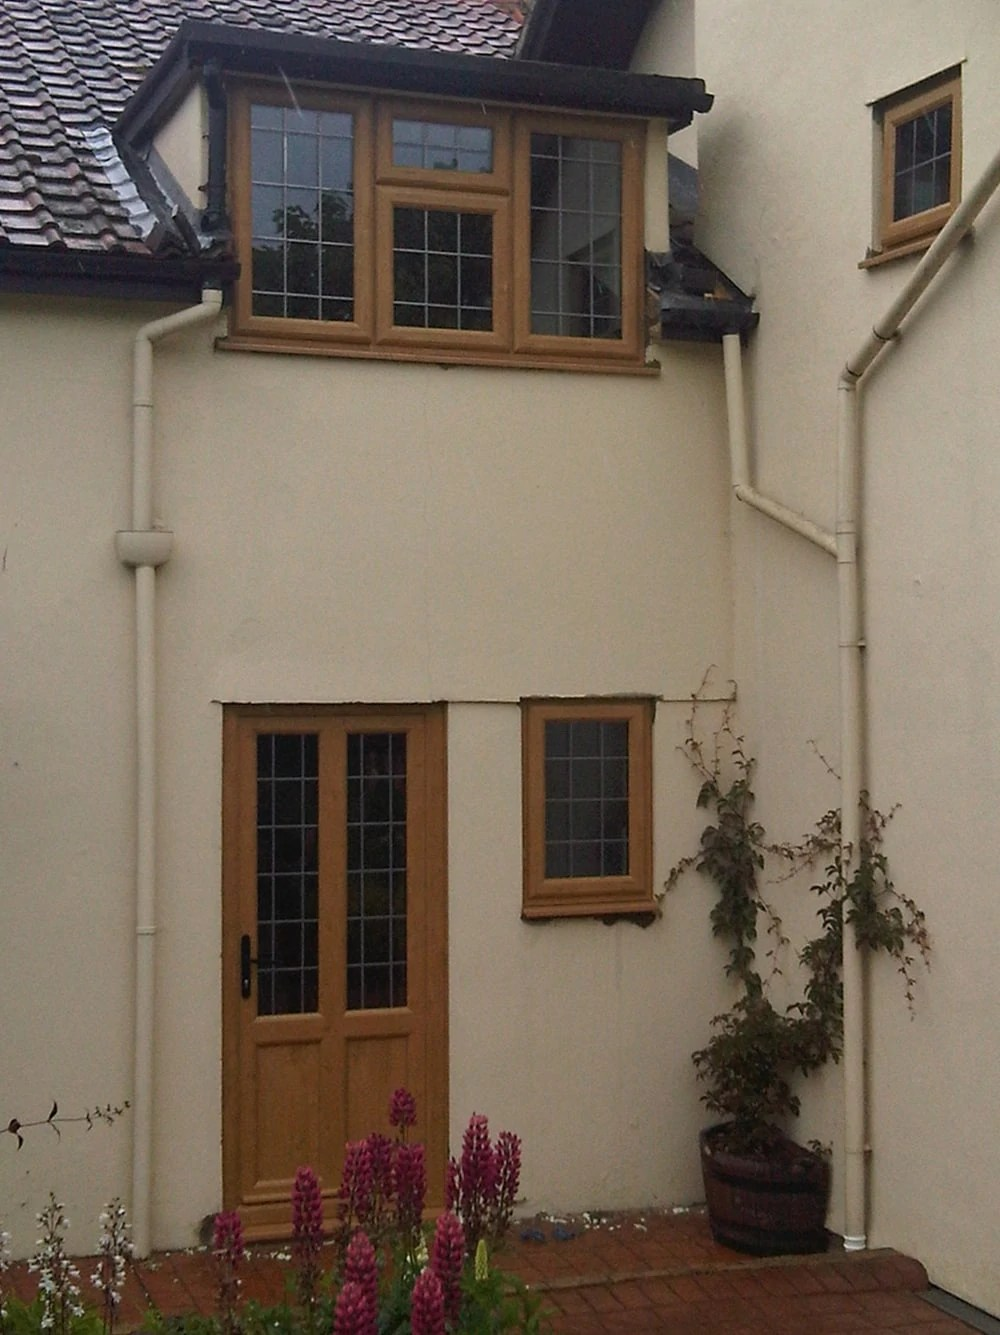 Irish Oak Windows Elglaze Ltd